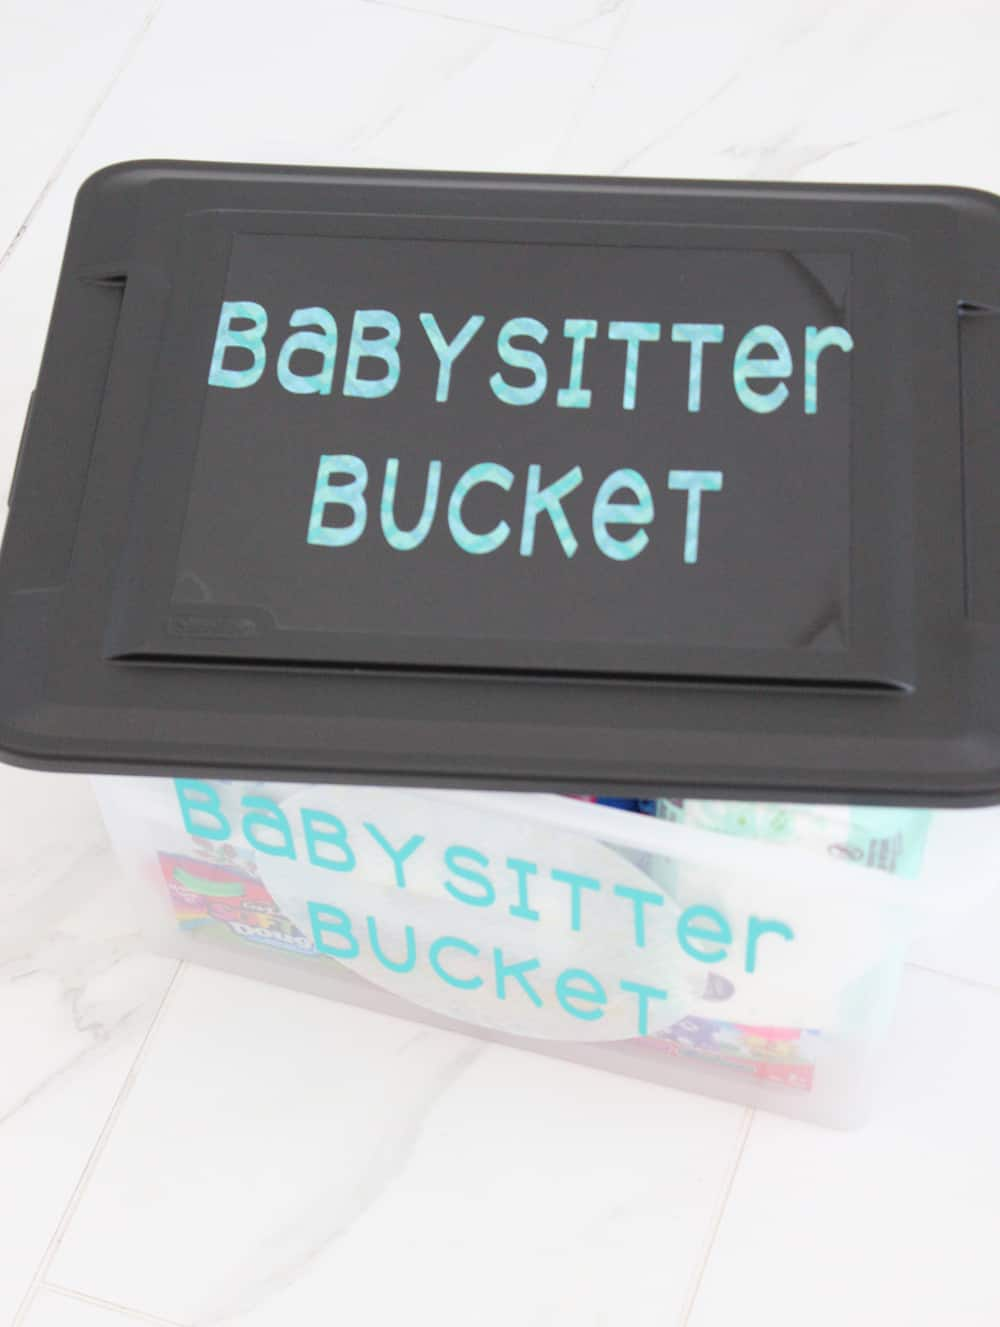 Babysitter bucket filled with all the essentials a baby sitter will need to care for your kids, plus fun toys and games!